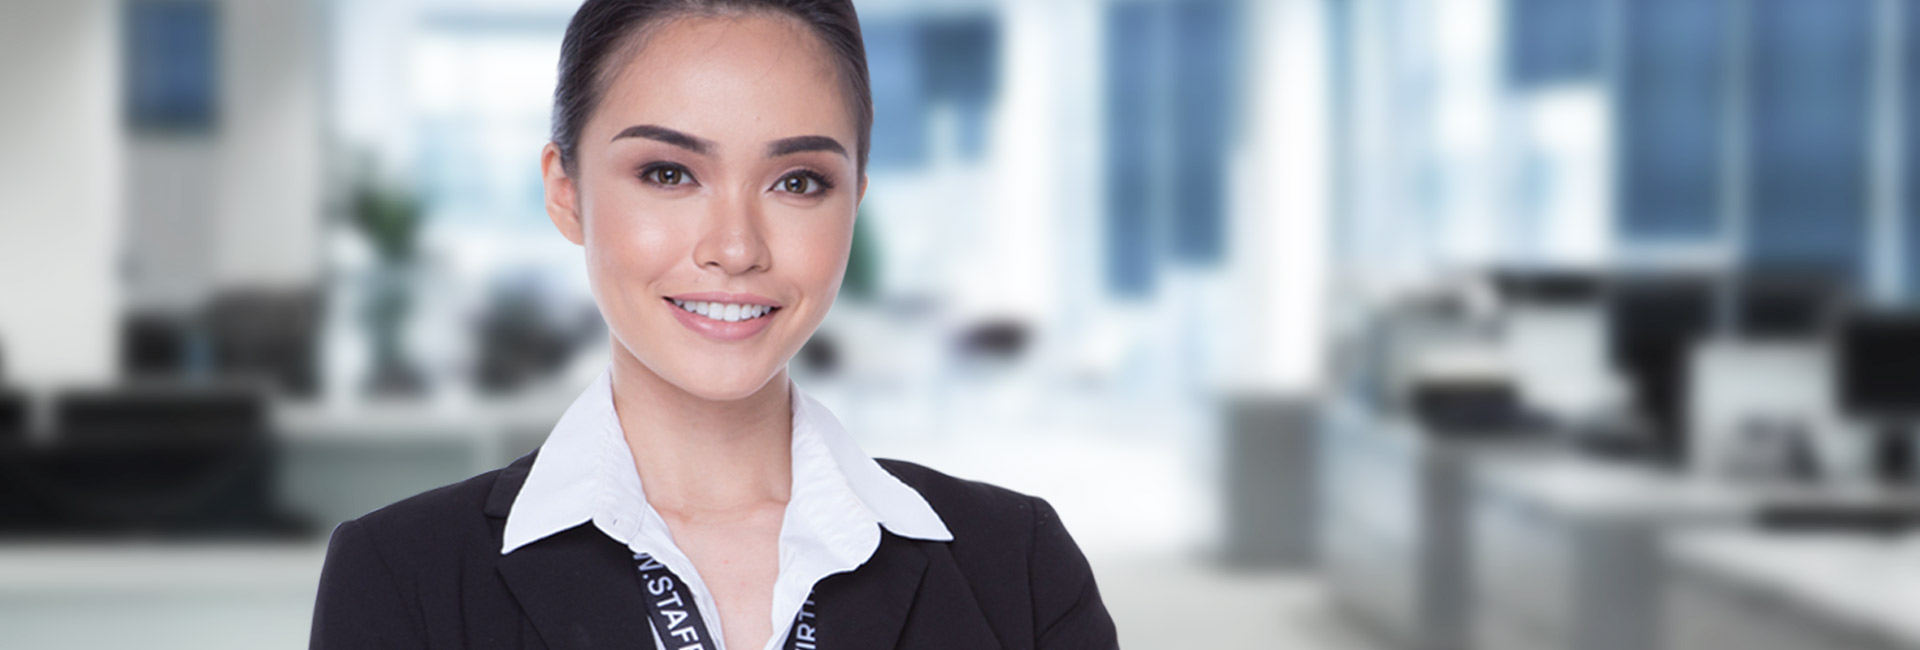 outsourcing-legal-assistant-to-the-philippines